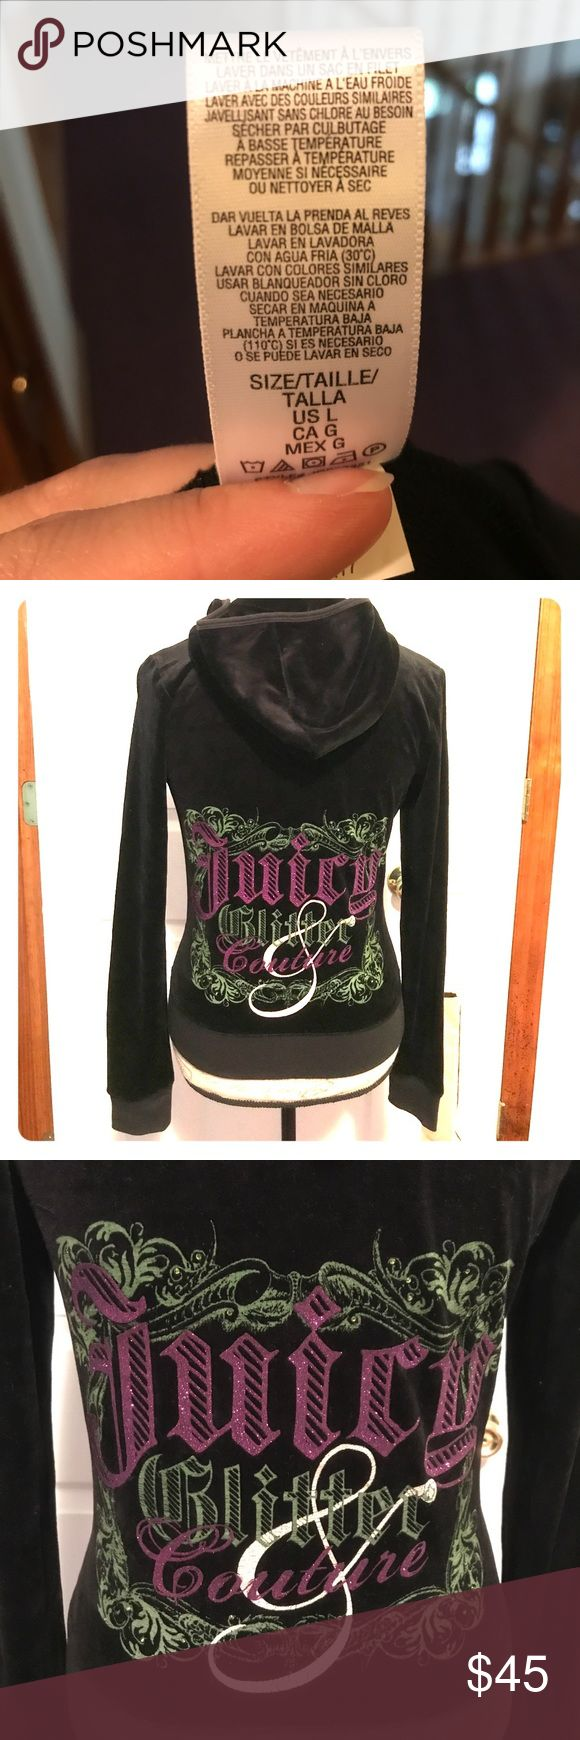 Juicy Couture Velour track suits Womens Juicy Couture Tracksuit Brand New Never Worn The Zip Up does not come with tags but the pants do come with tags. The Zip Up is a Size large and the pants a Size Petite Juicy Couture Other